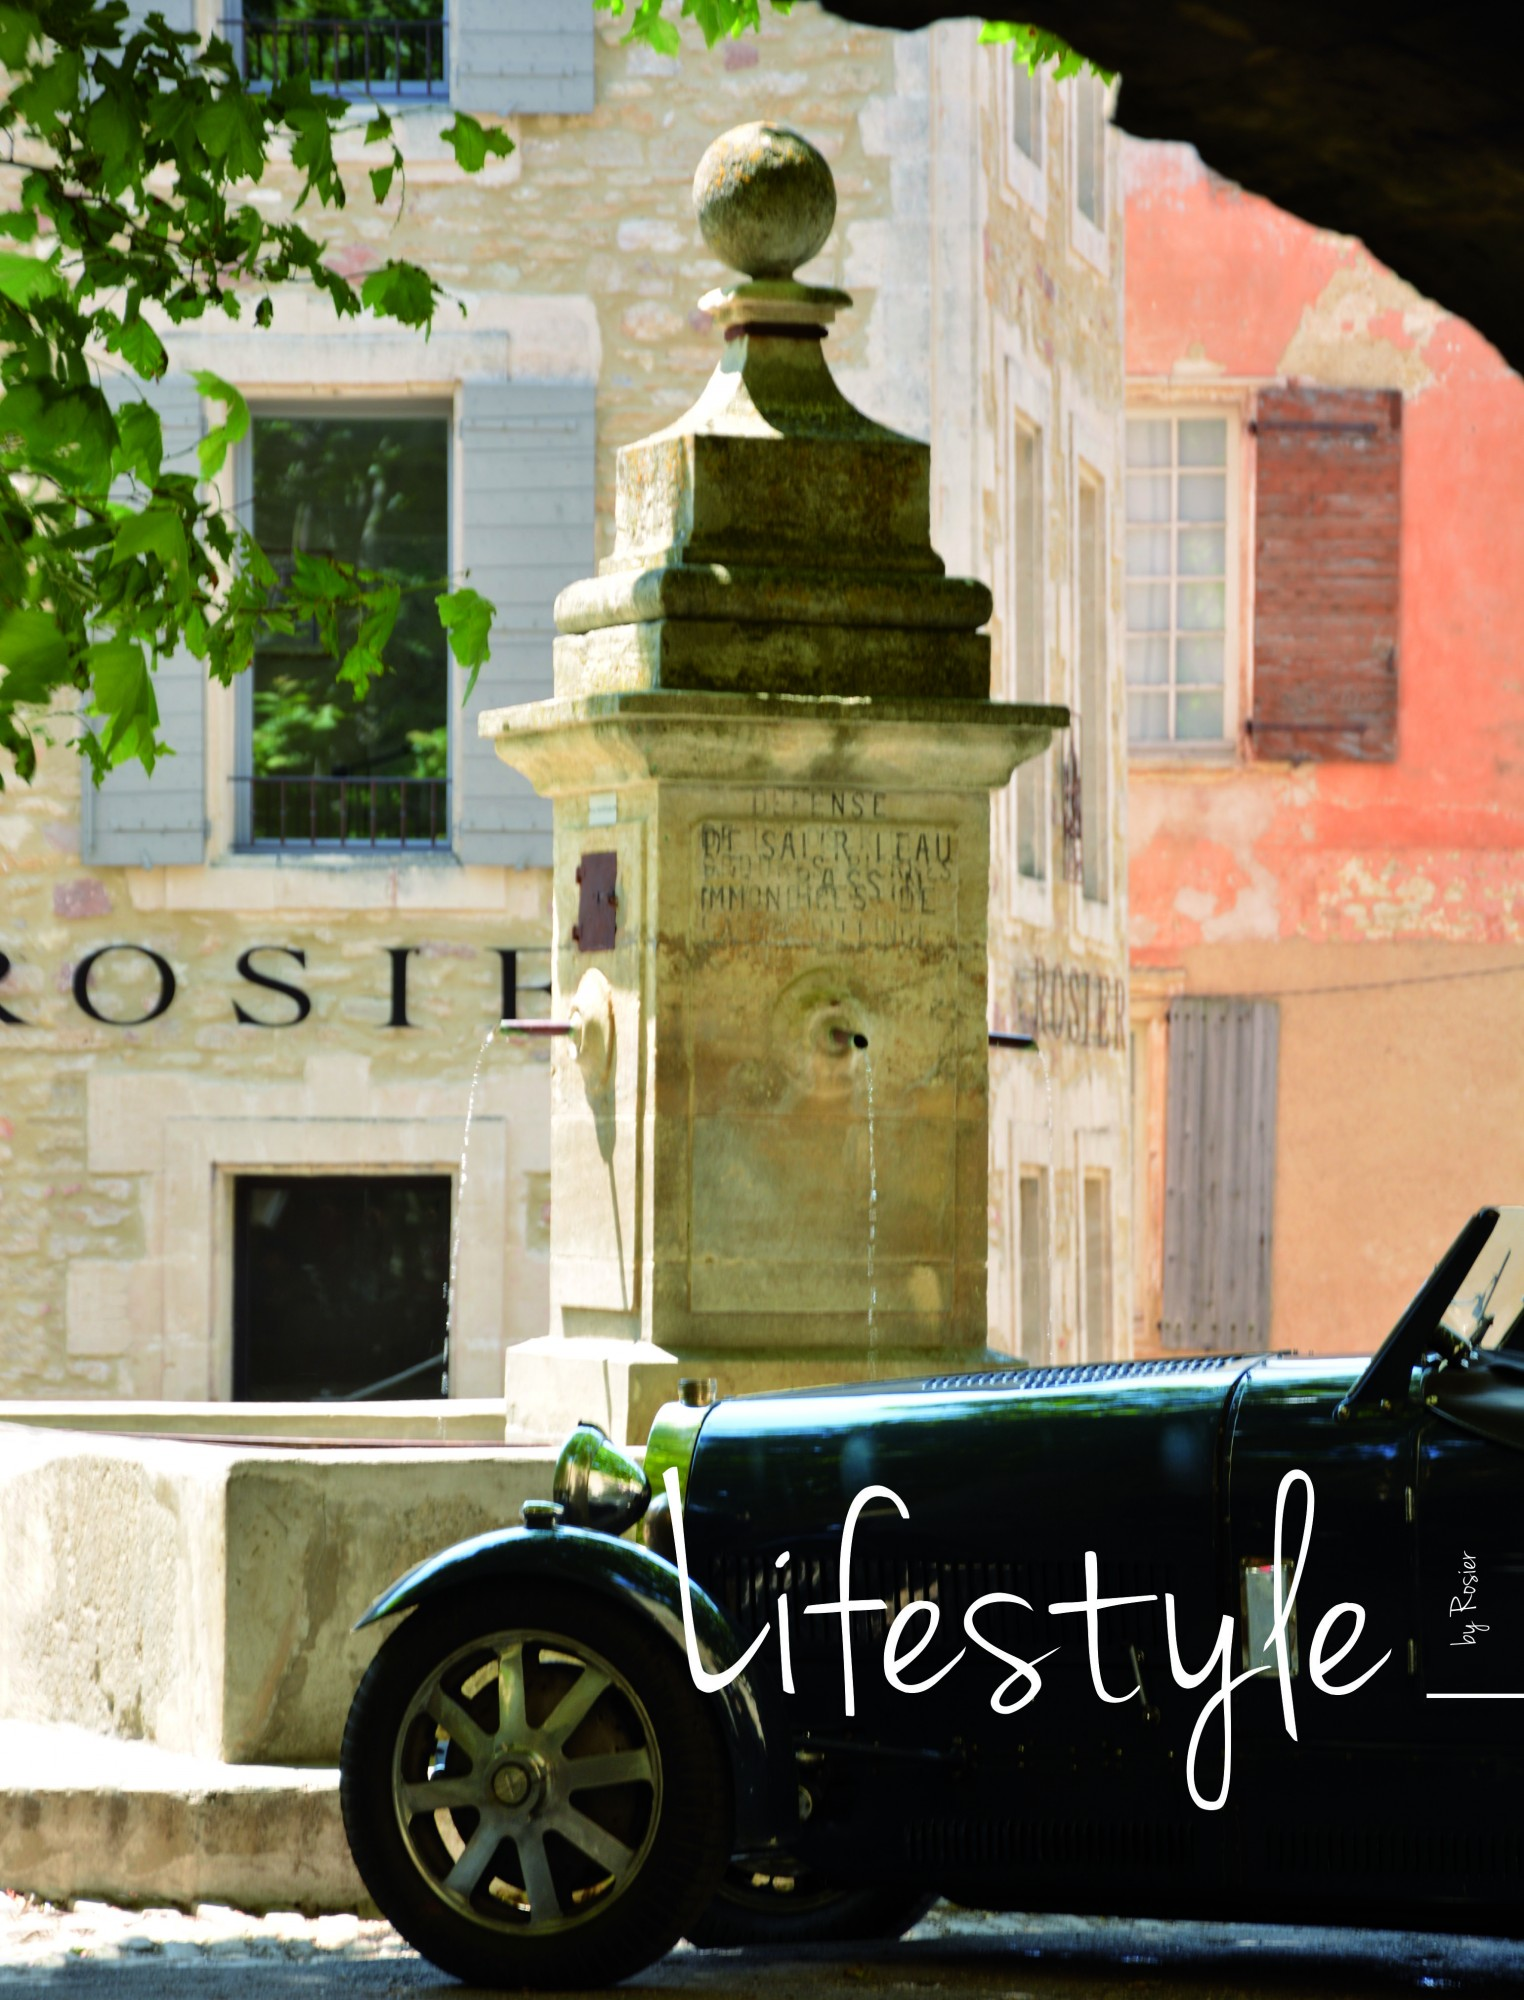 Lifestyle by Rosier, le magazine - édition 2016